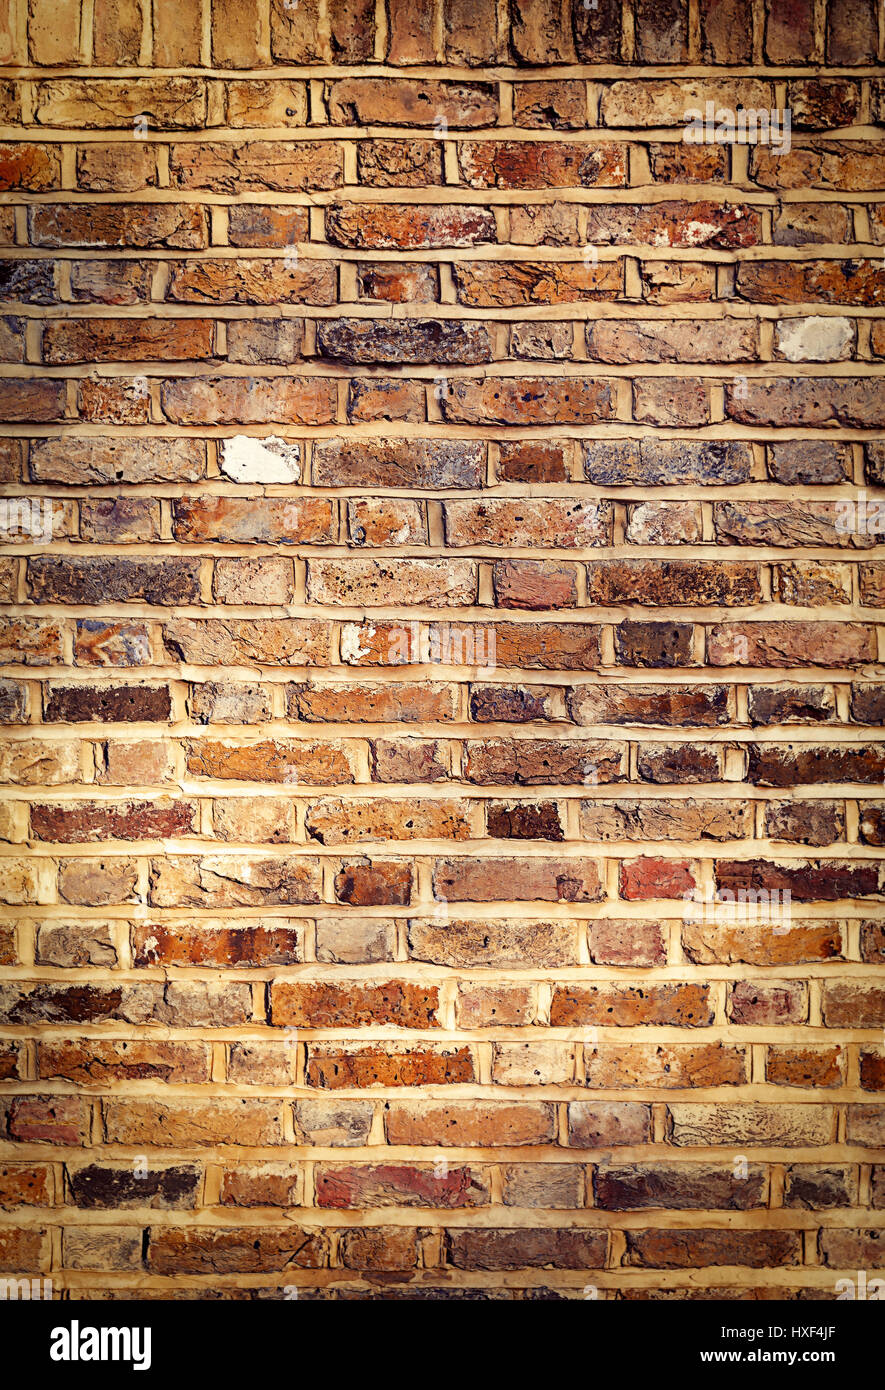 Industrial Brick Wall Best Background Texture Close Stock